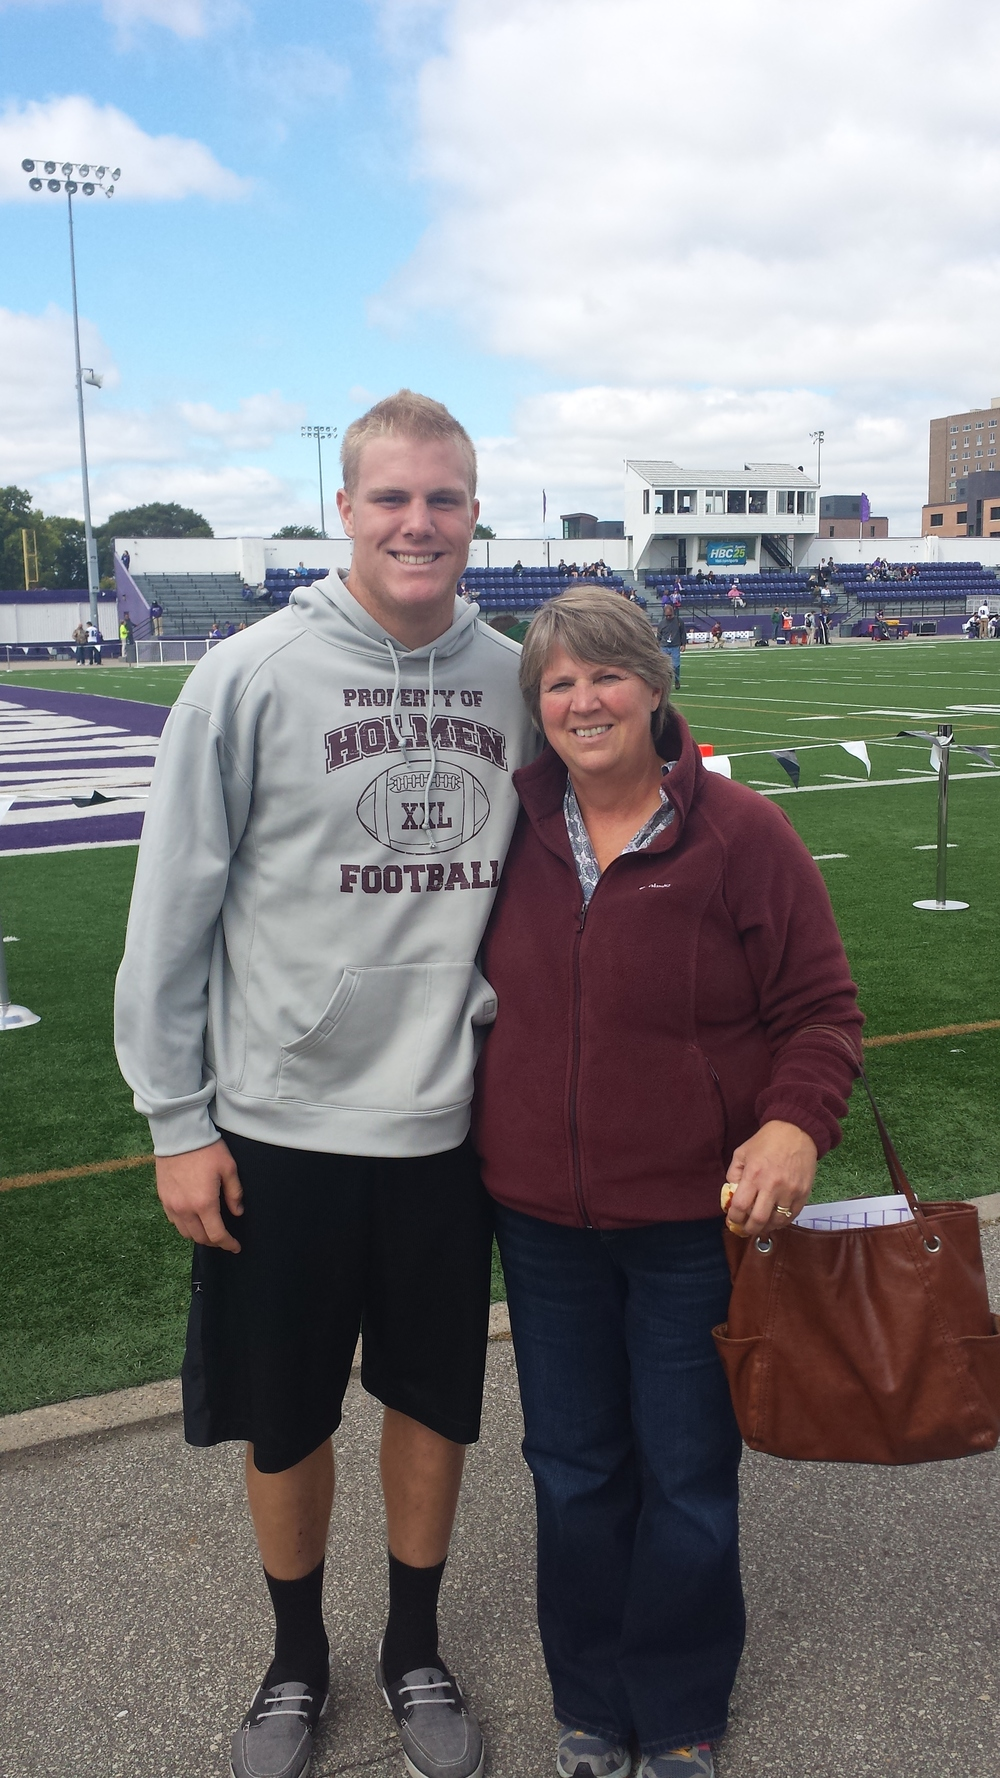 Greg with his Mom Karen at a WSU game in the fall